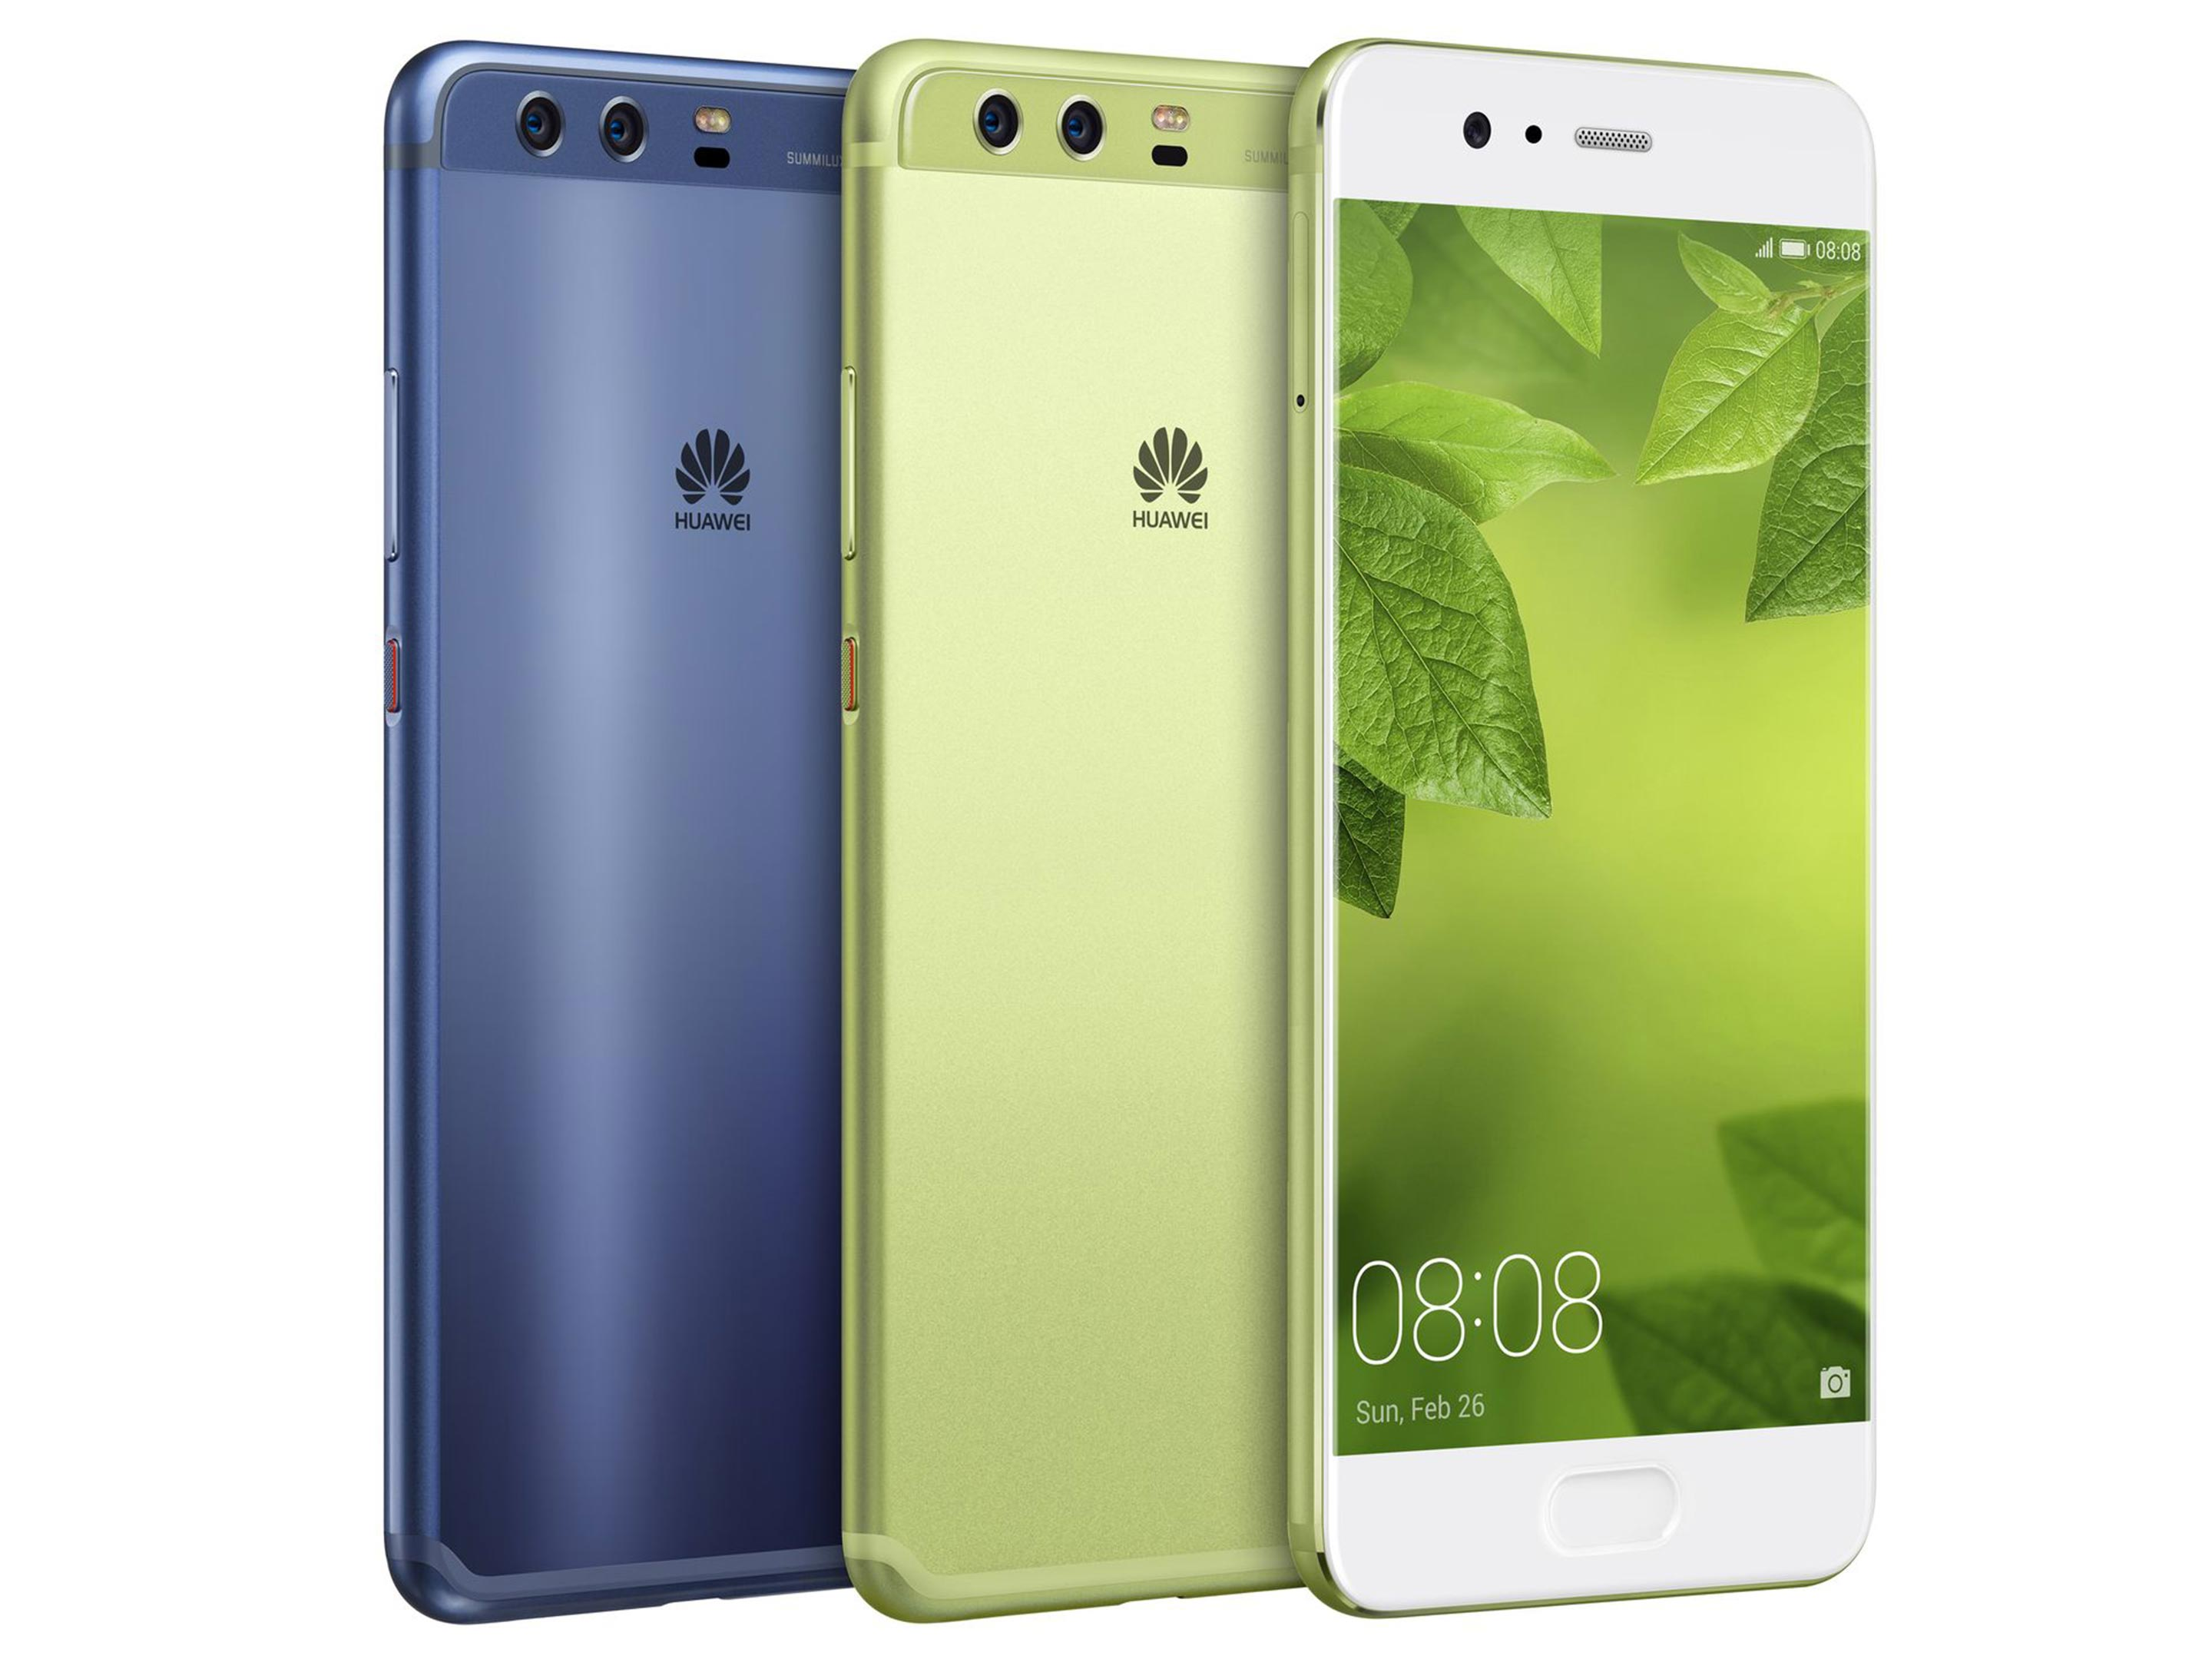 Huawei P10 Dazzling Blue and Greenery